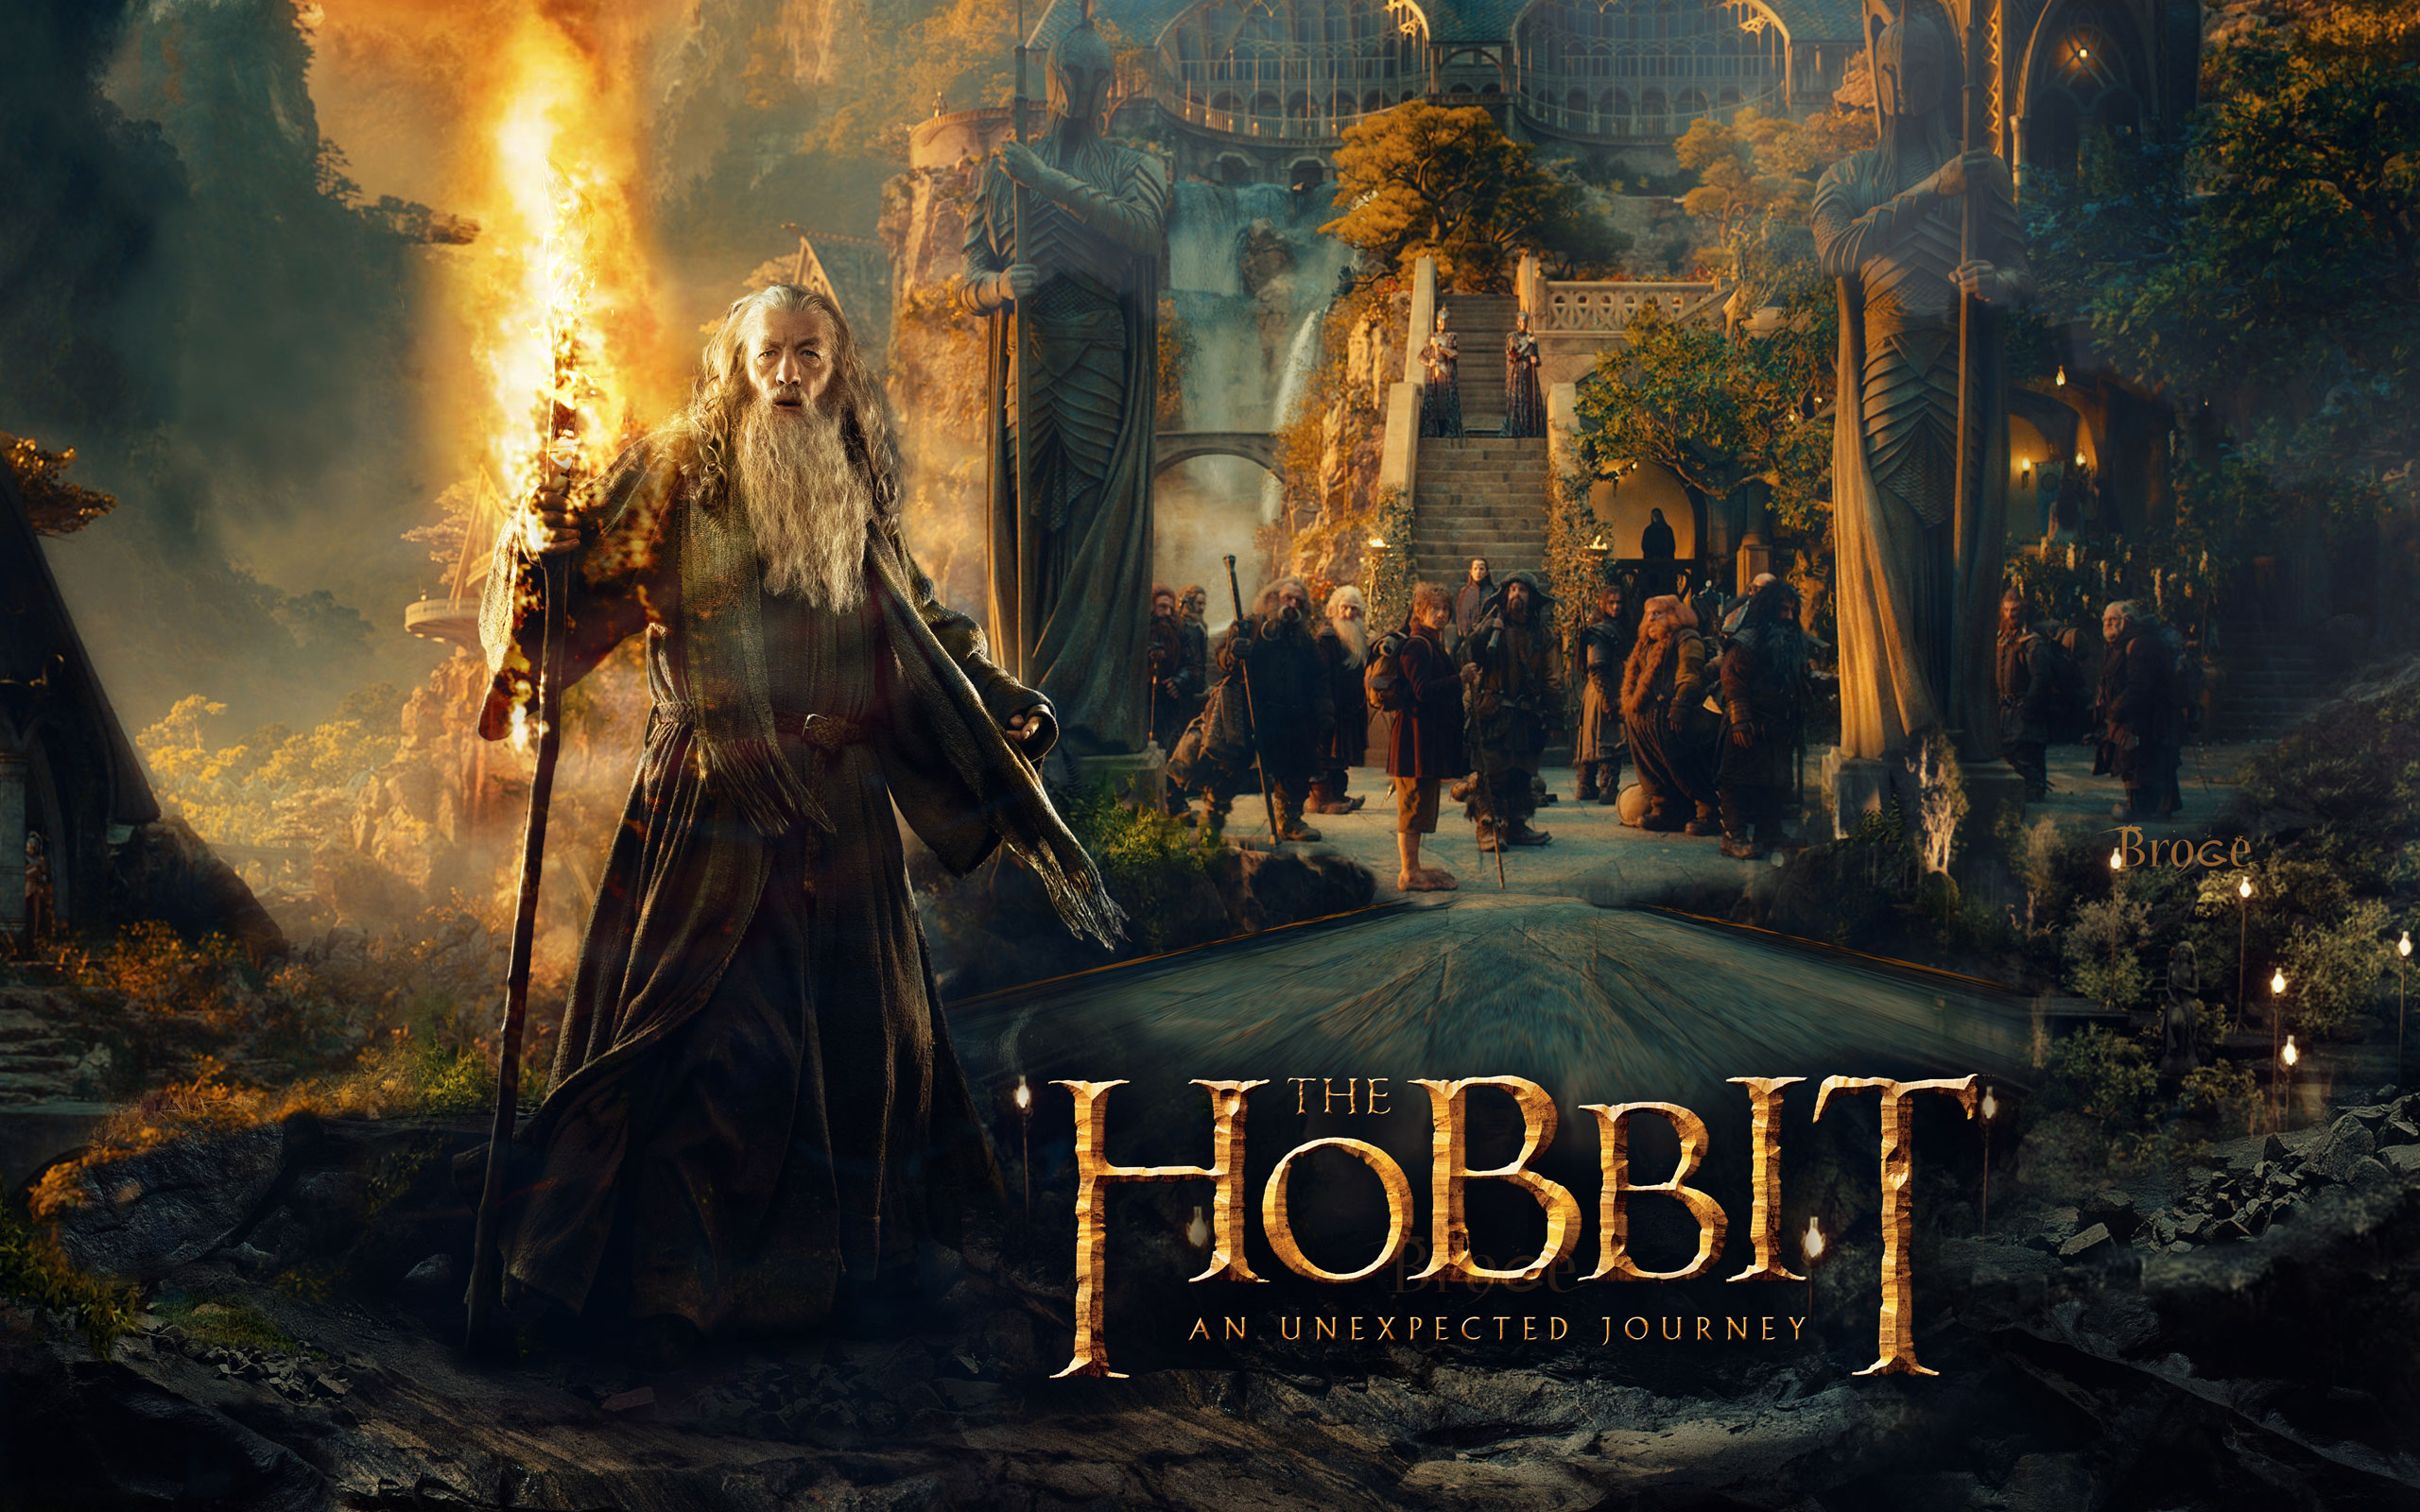 the hobbit Computer Wallpapers Desktop Backgrounds 2560x1600